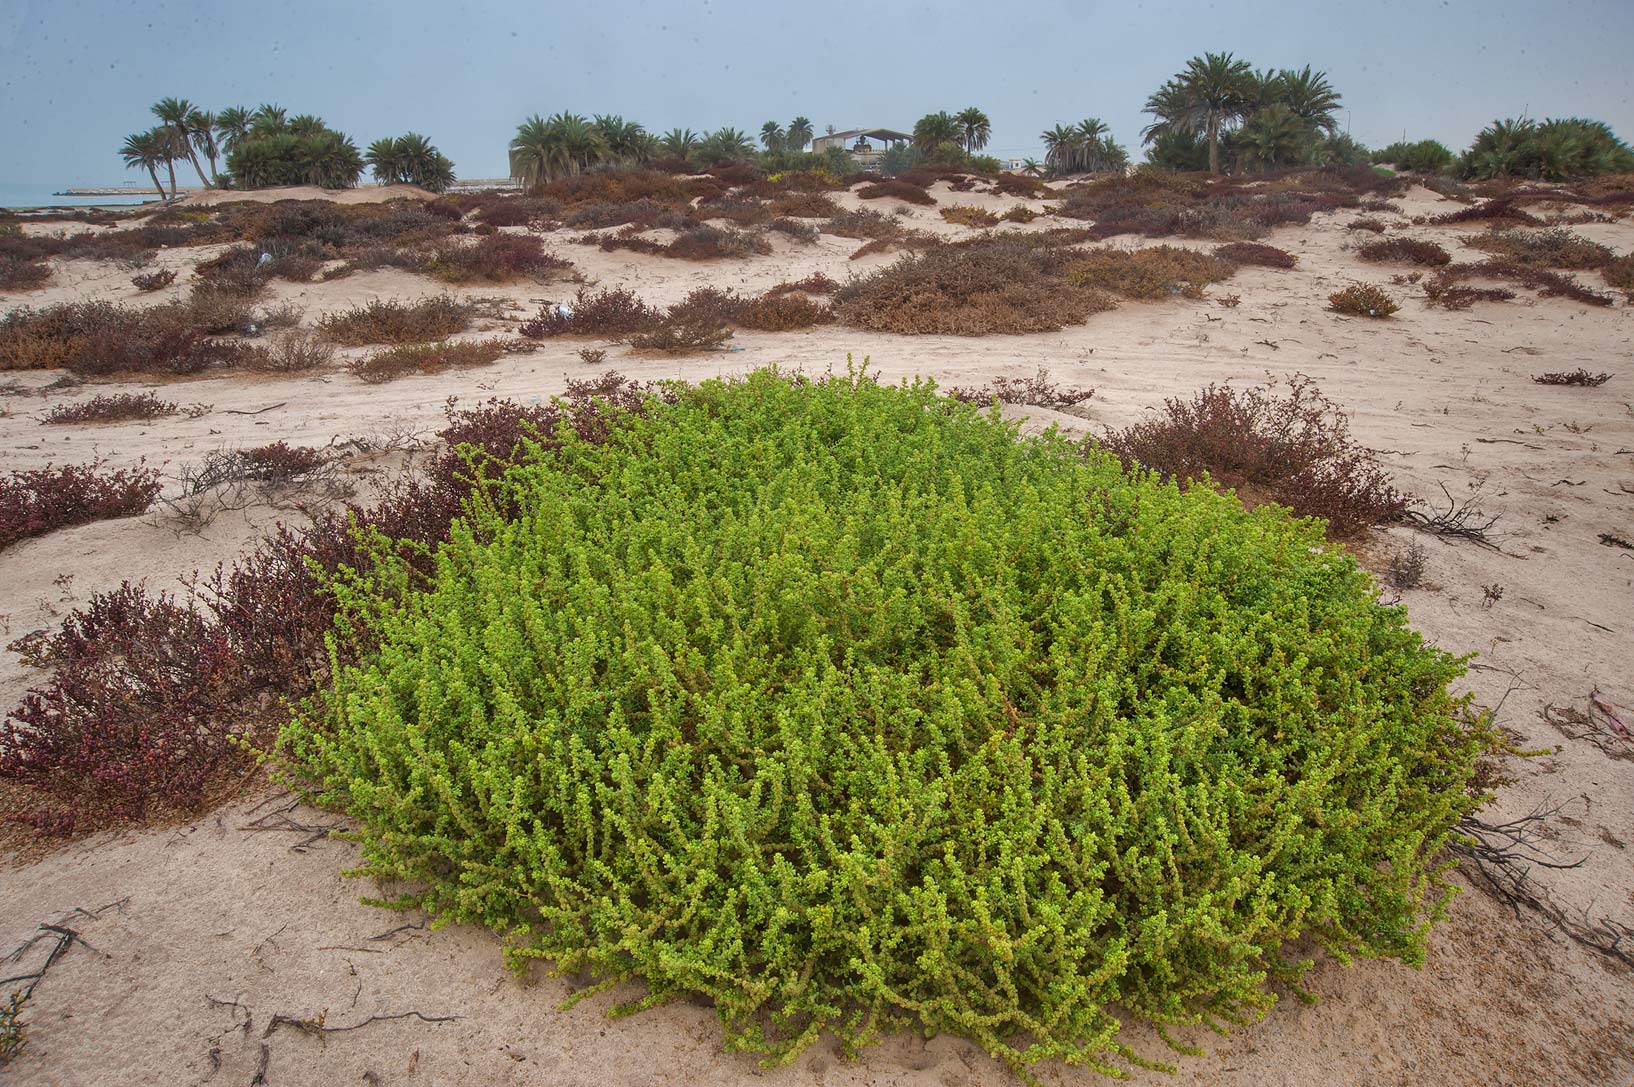 photo 162123 large bush of salsola cyclophylla in area